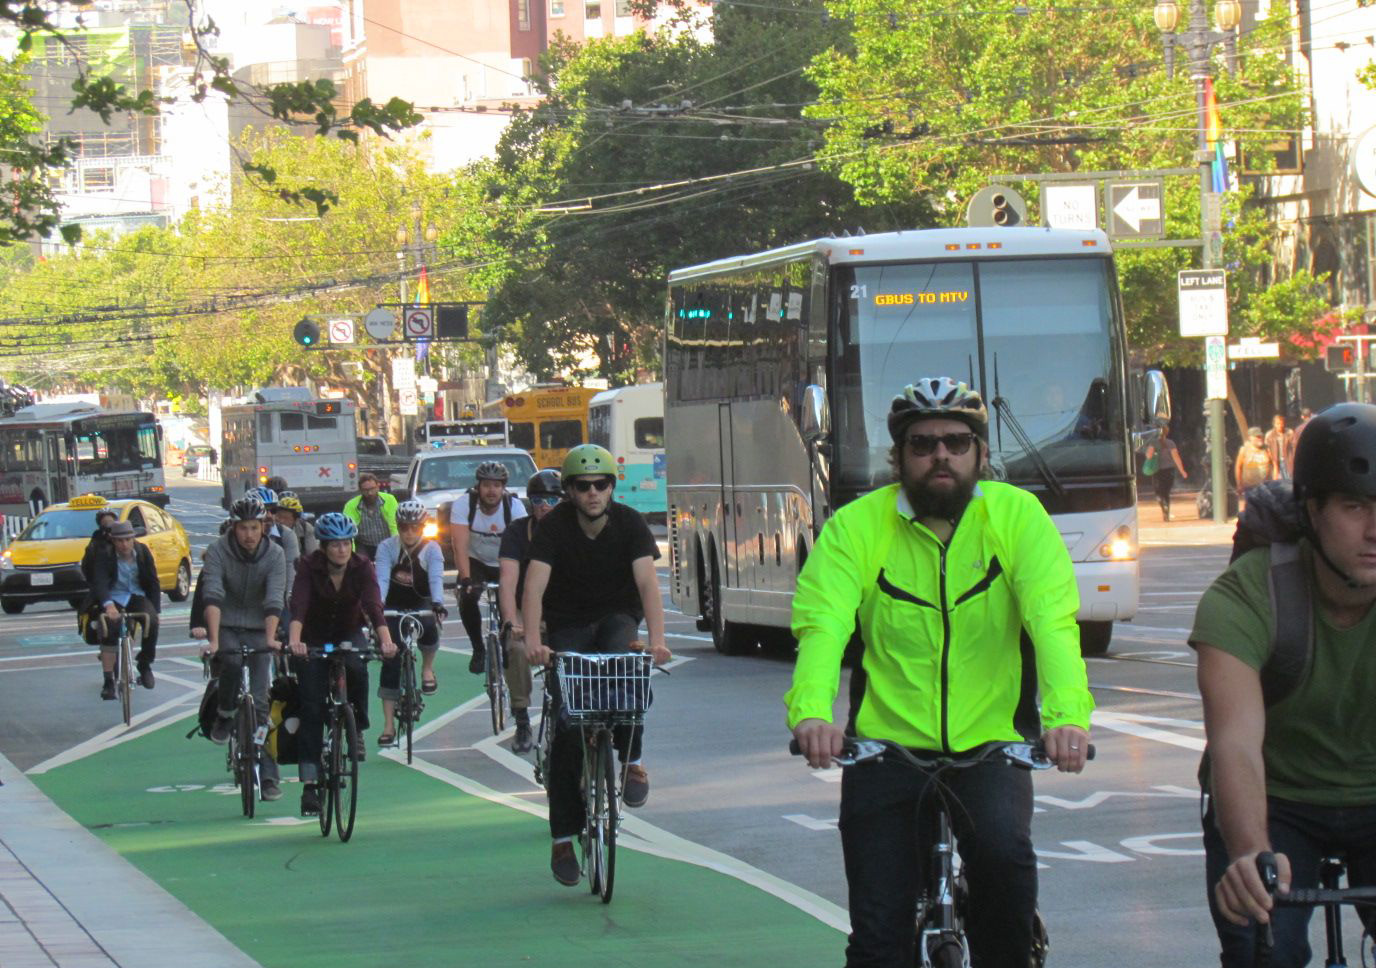 San Francisco has witnessed a rapid growth in bike commuting under SFBC's watch. Image: Market Street, SF. By Melanie Curry/Streetsblog